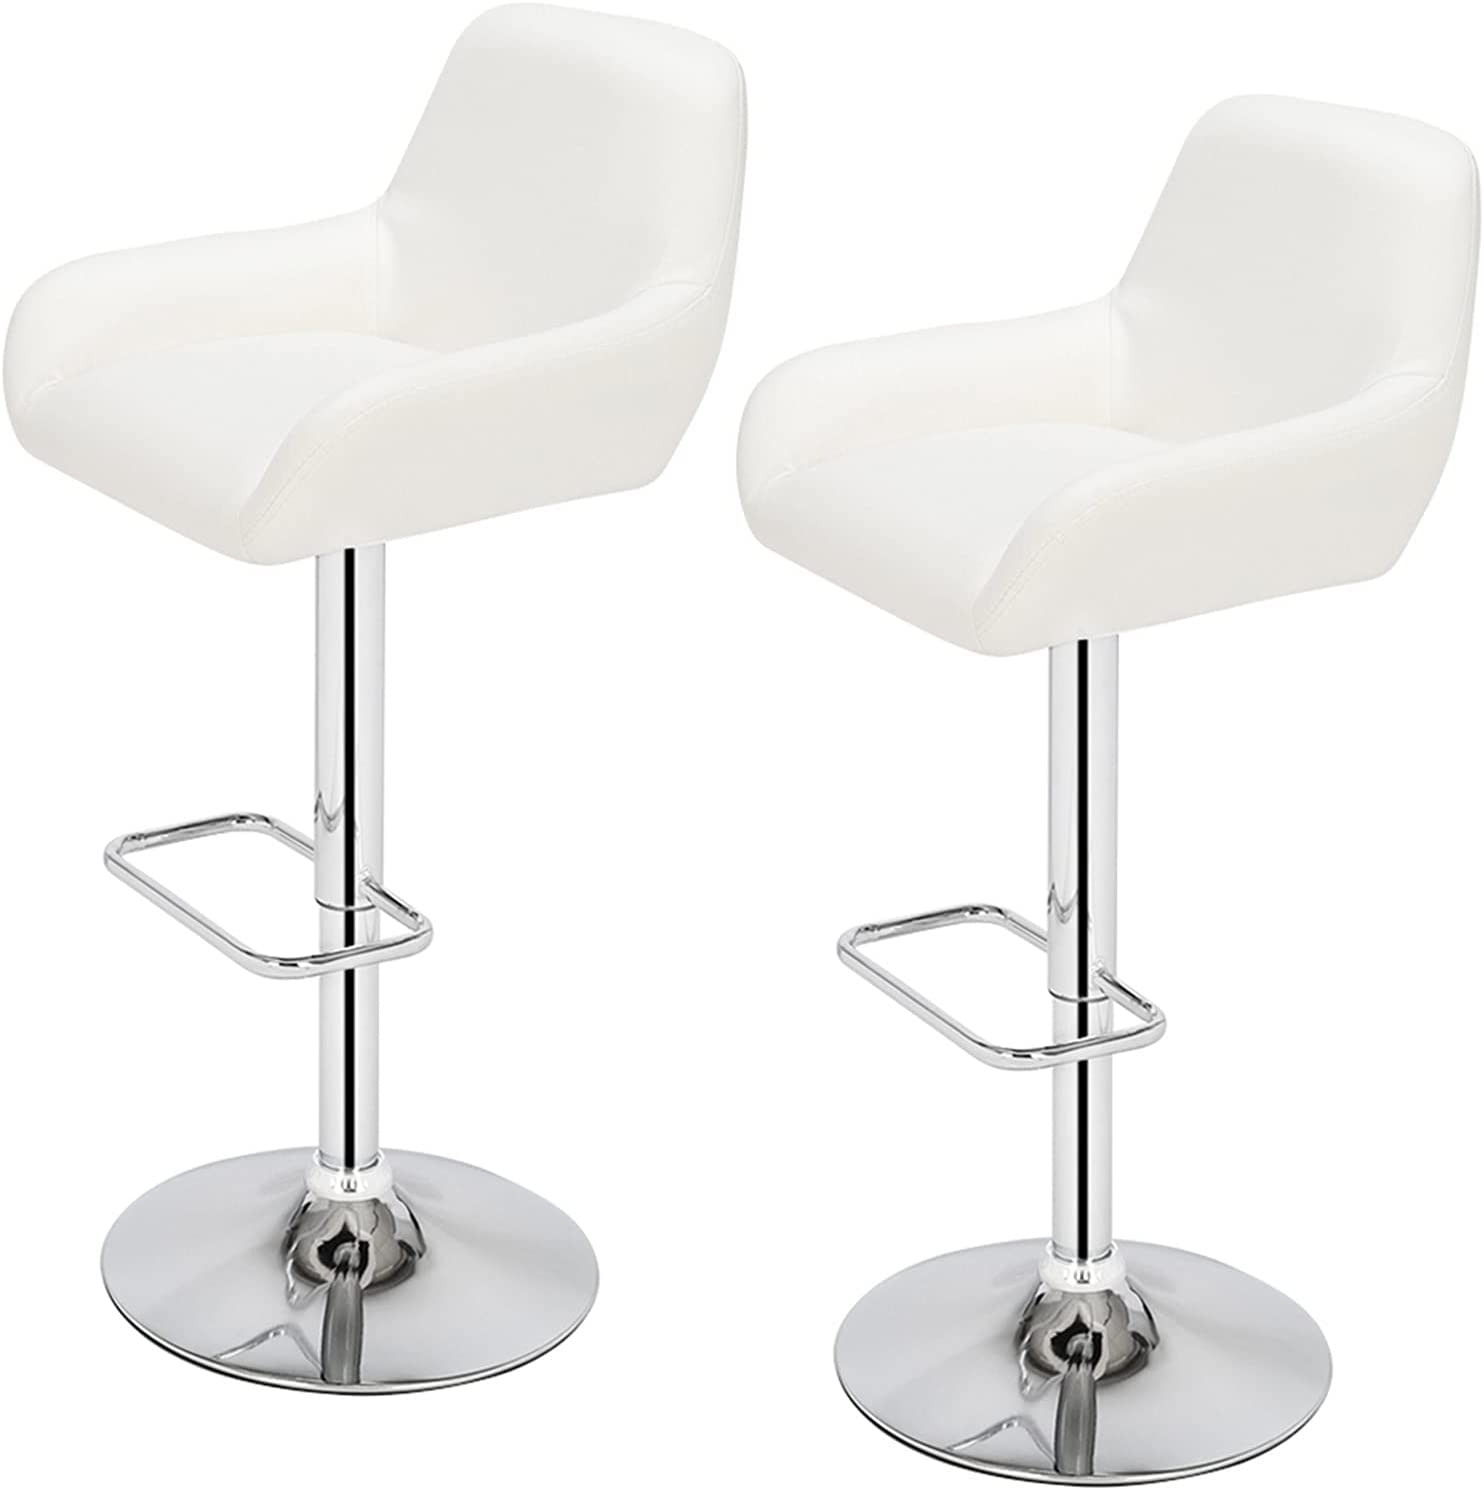 paritariny Bar Stools Three Colors 2 A surprise price is realized Chair Foot Time sale Stoo Square